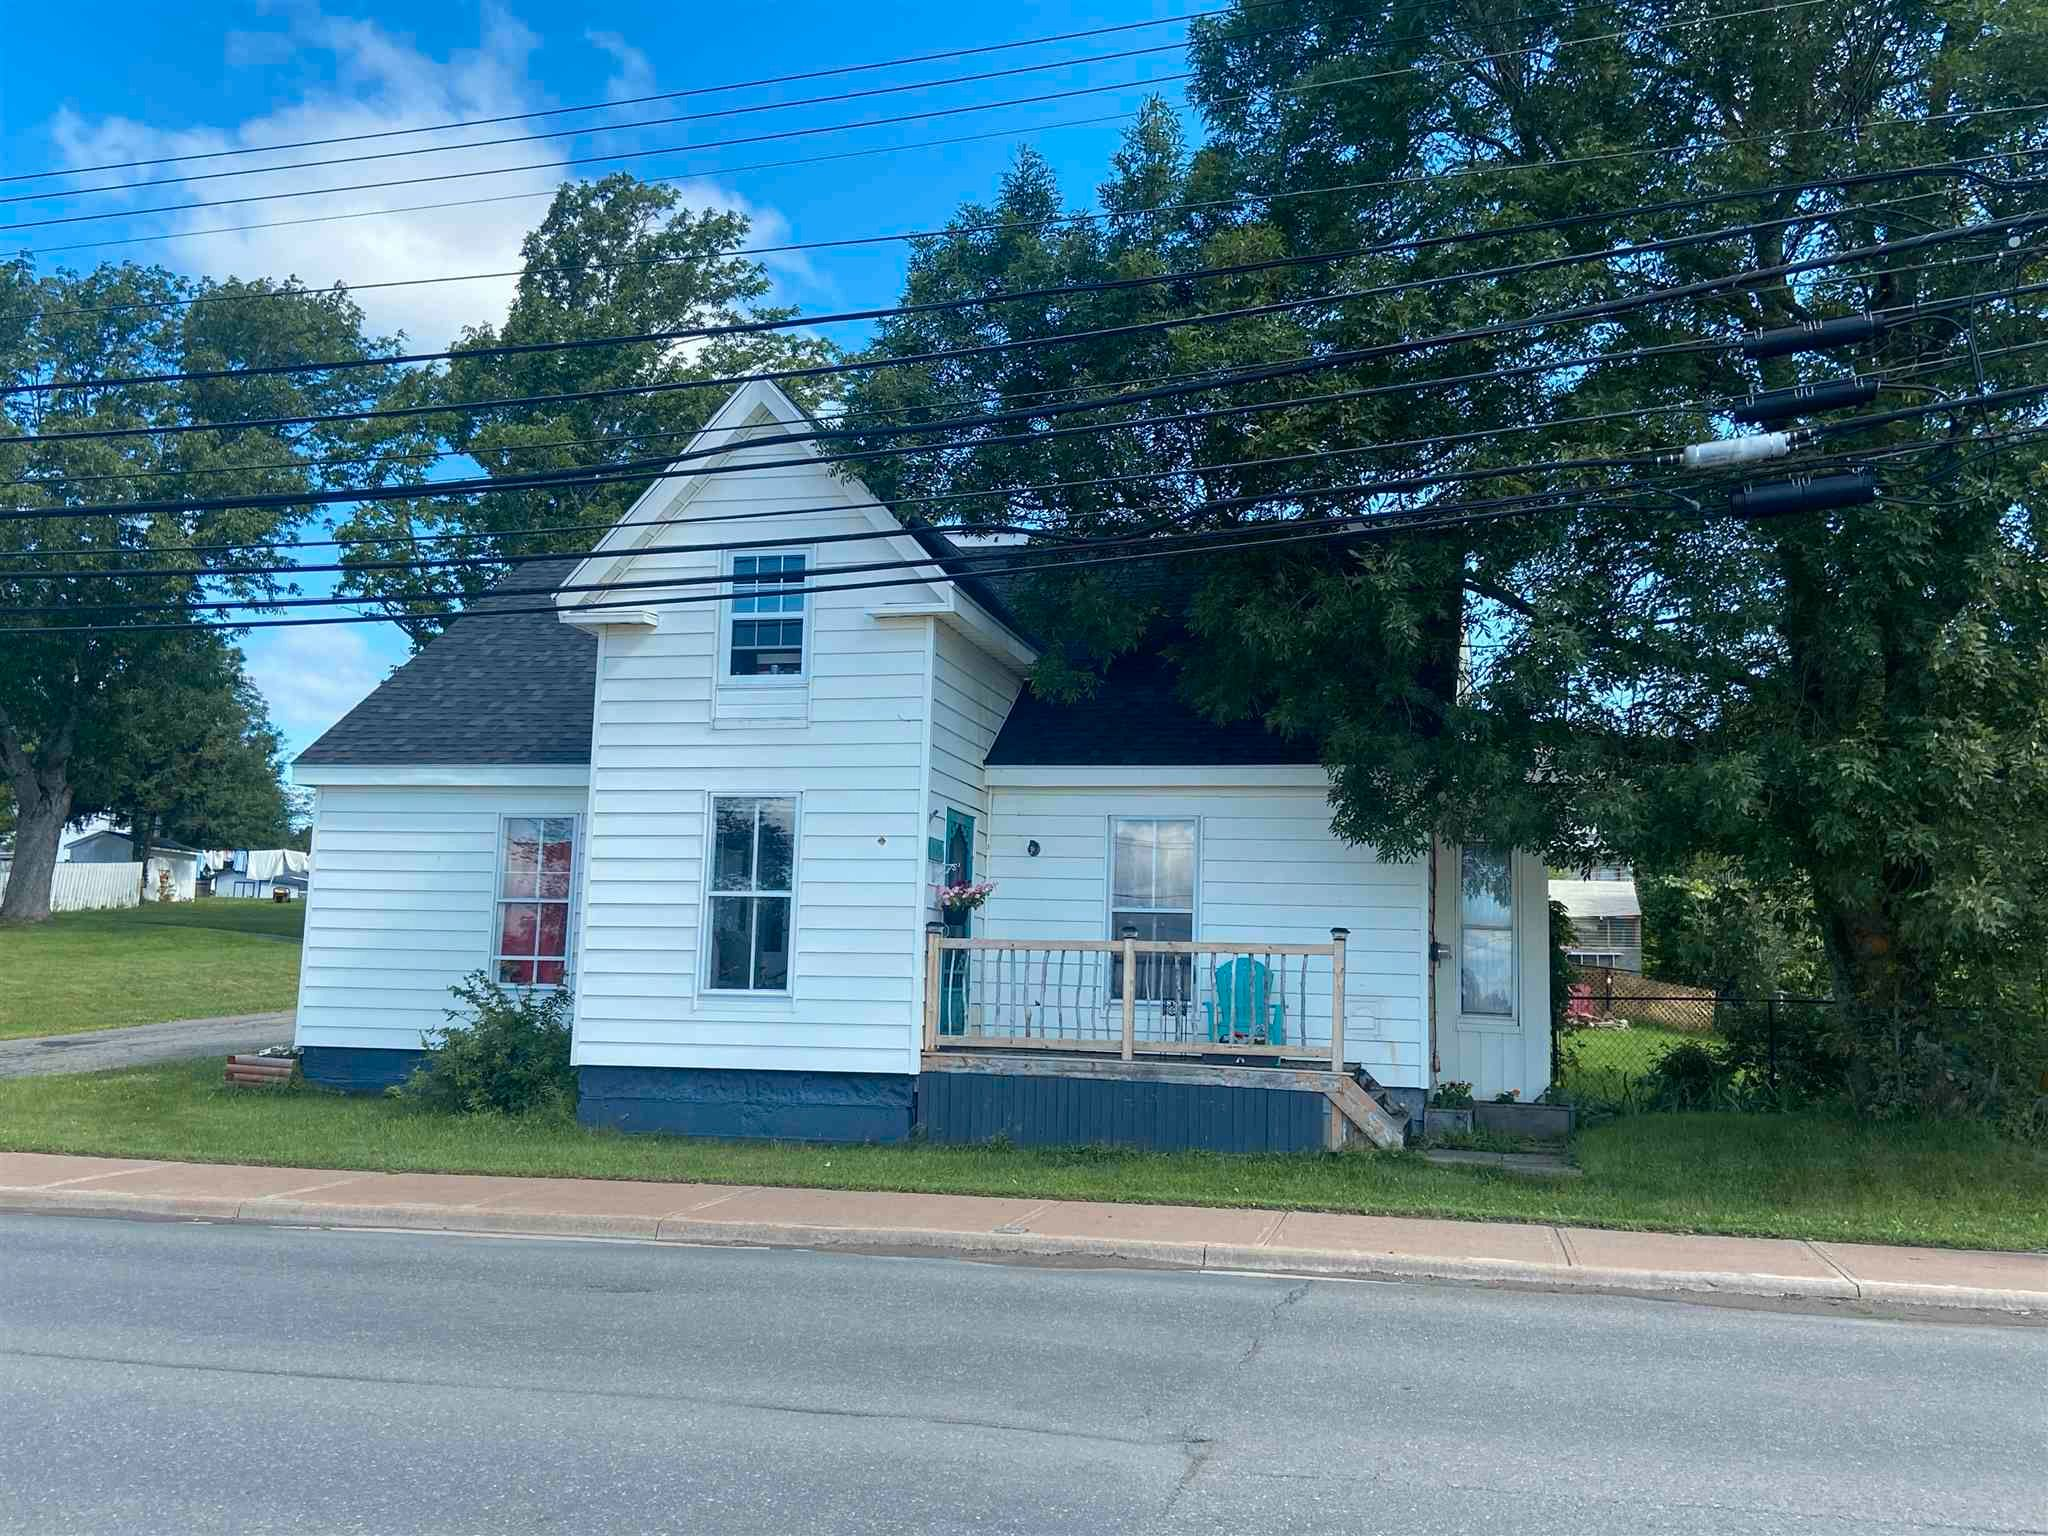 Main Photo: 196 Church Street in Pictou: 107-Trenton,Westville,Pictou Residential for sale (Northern Region)  : MLS®# 202119543